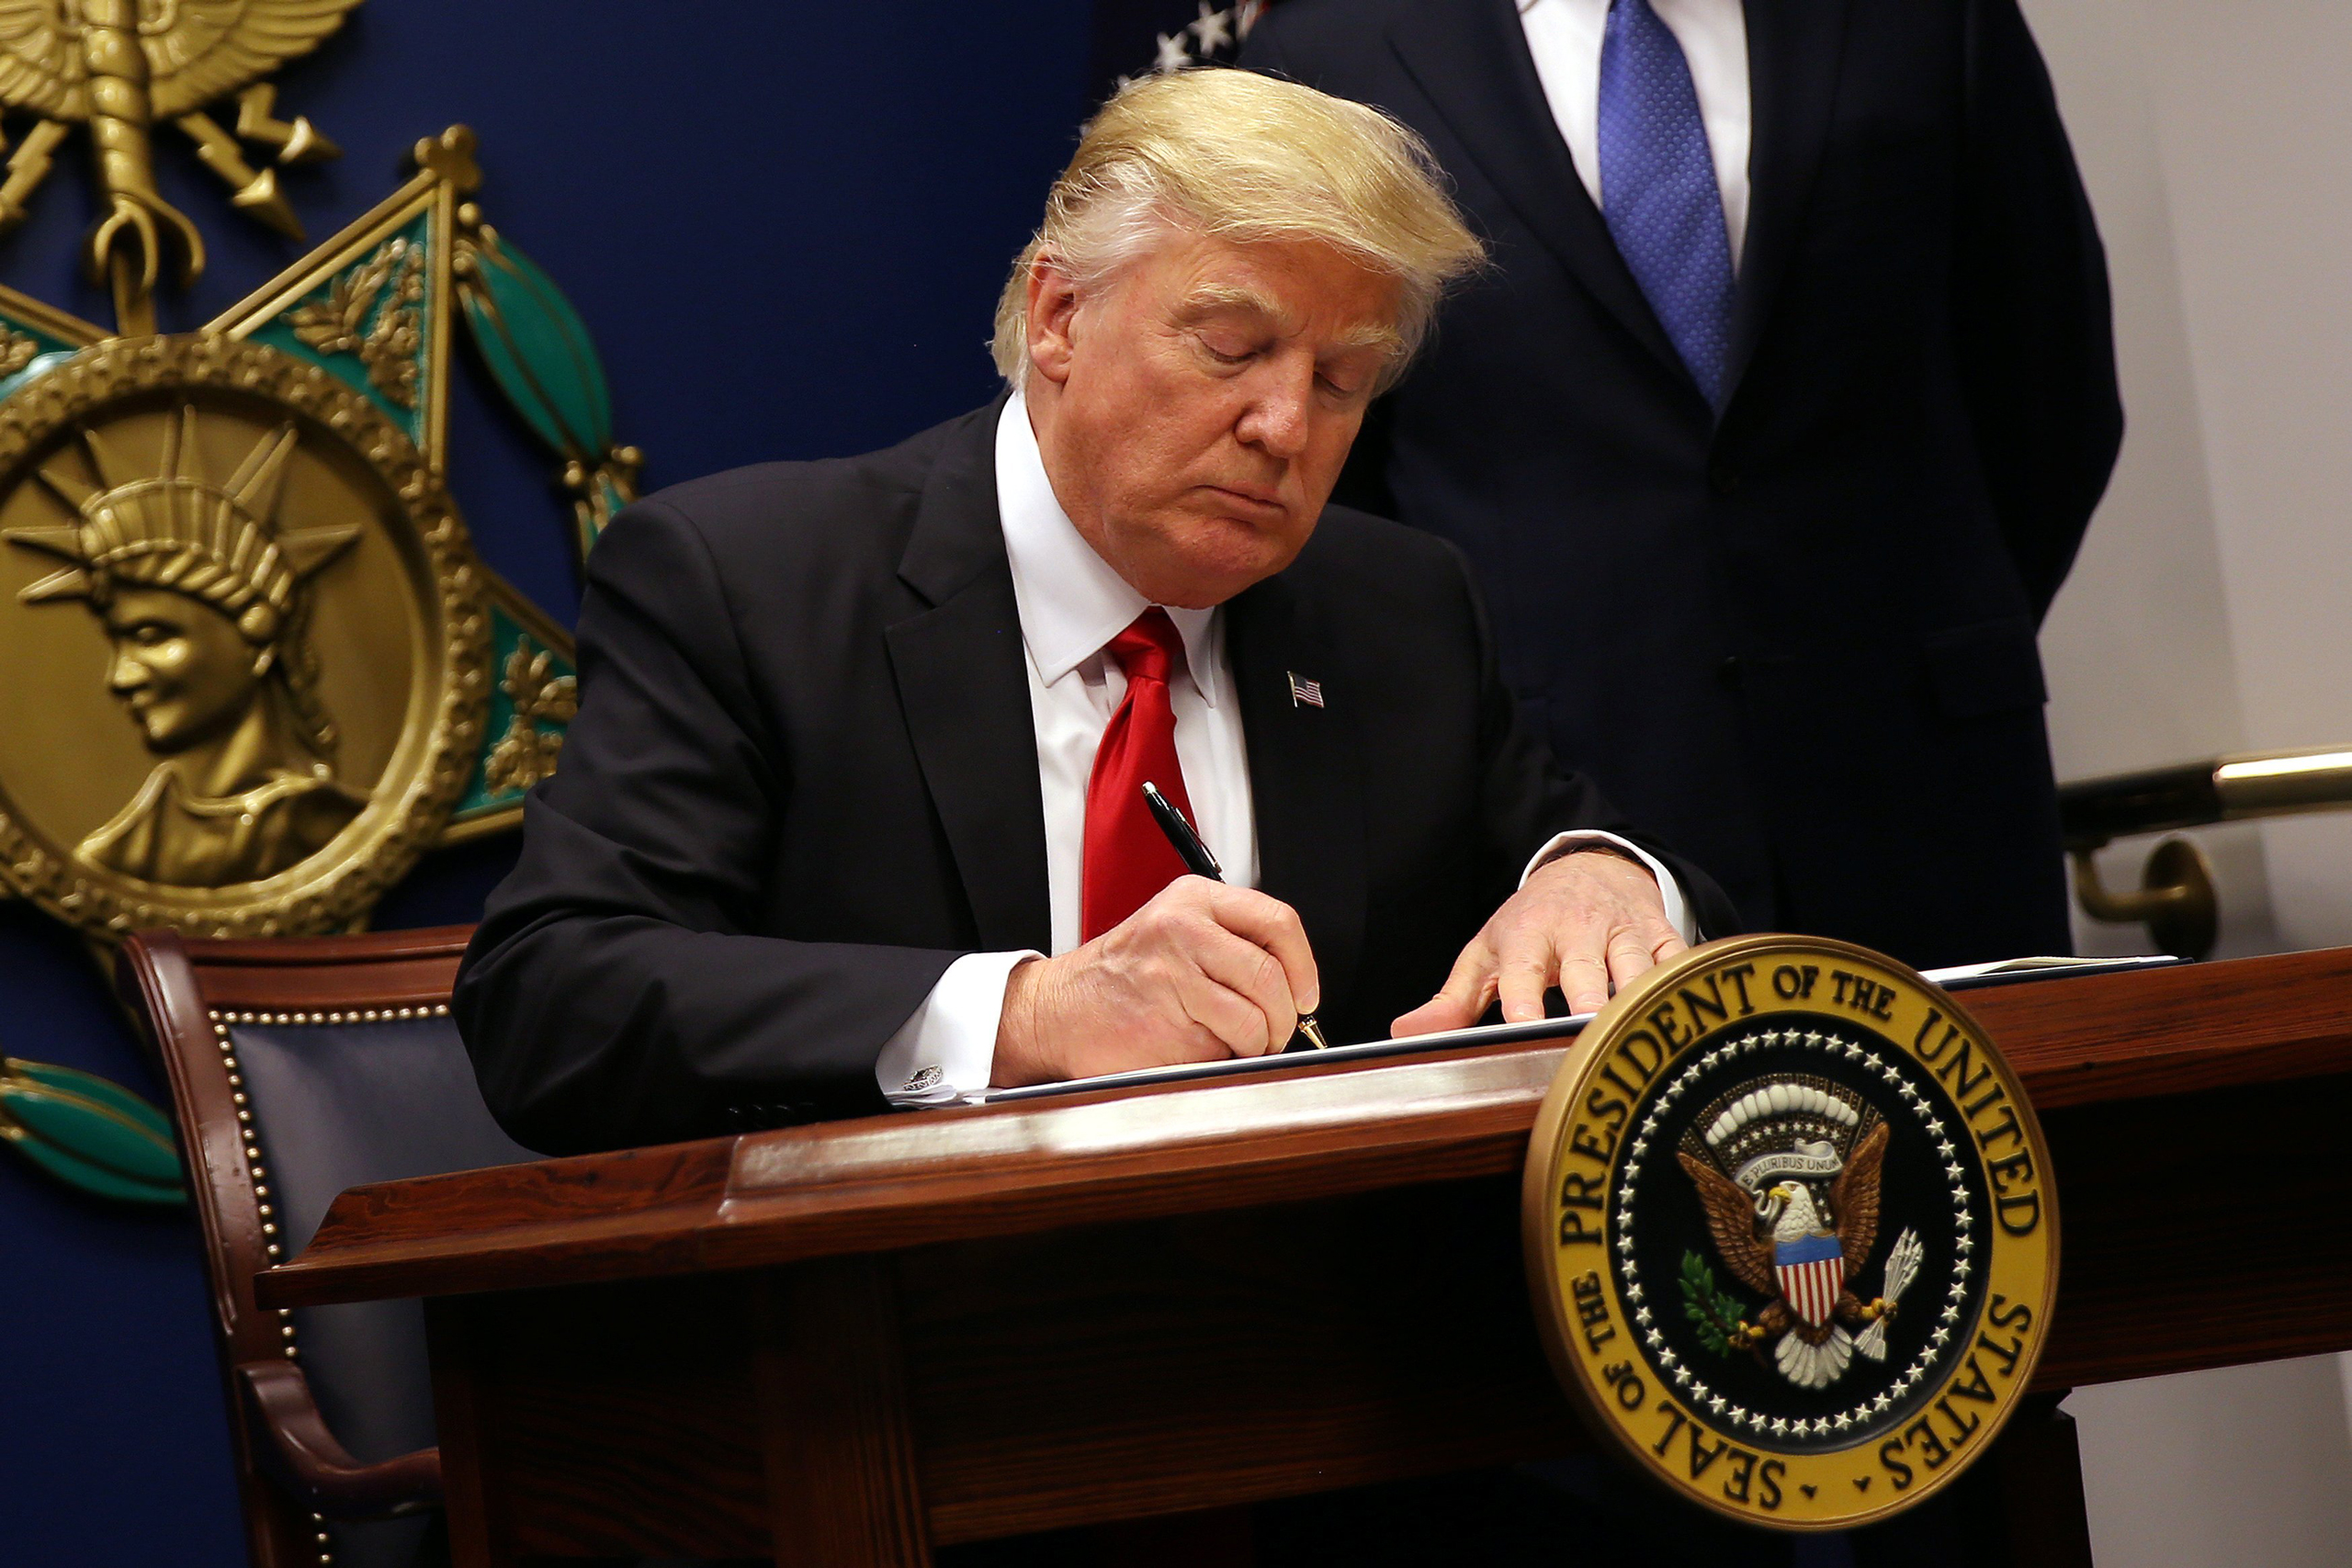 President Donald Trump signs an executive order imposing a four-month travel ban on refugees entering the United States and a 90-day hold on travelers from Syria, Iran and five other Muslim-majority countries at the Pentagon in Washington on Jan. 27, 2017.